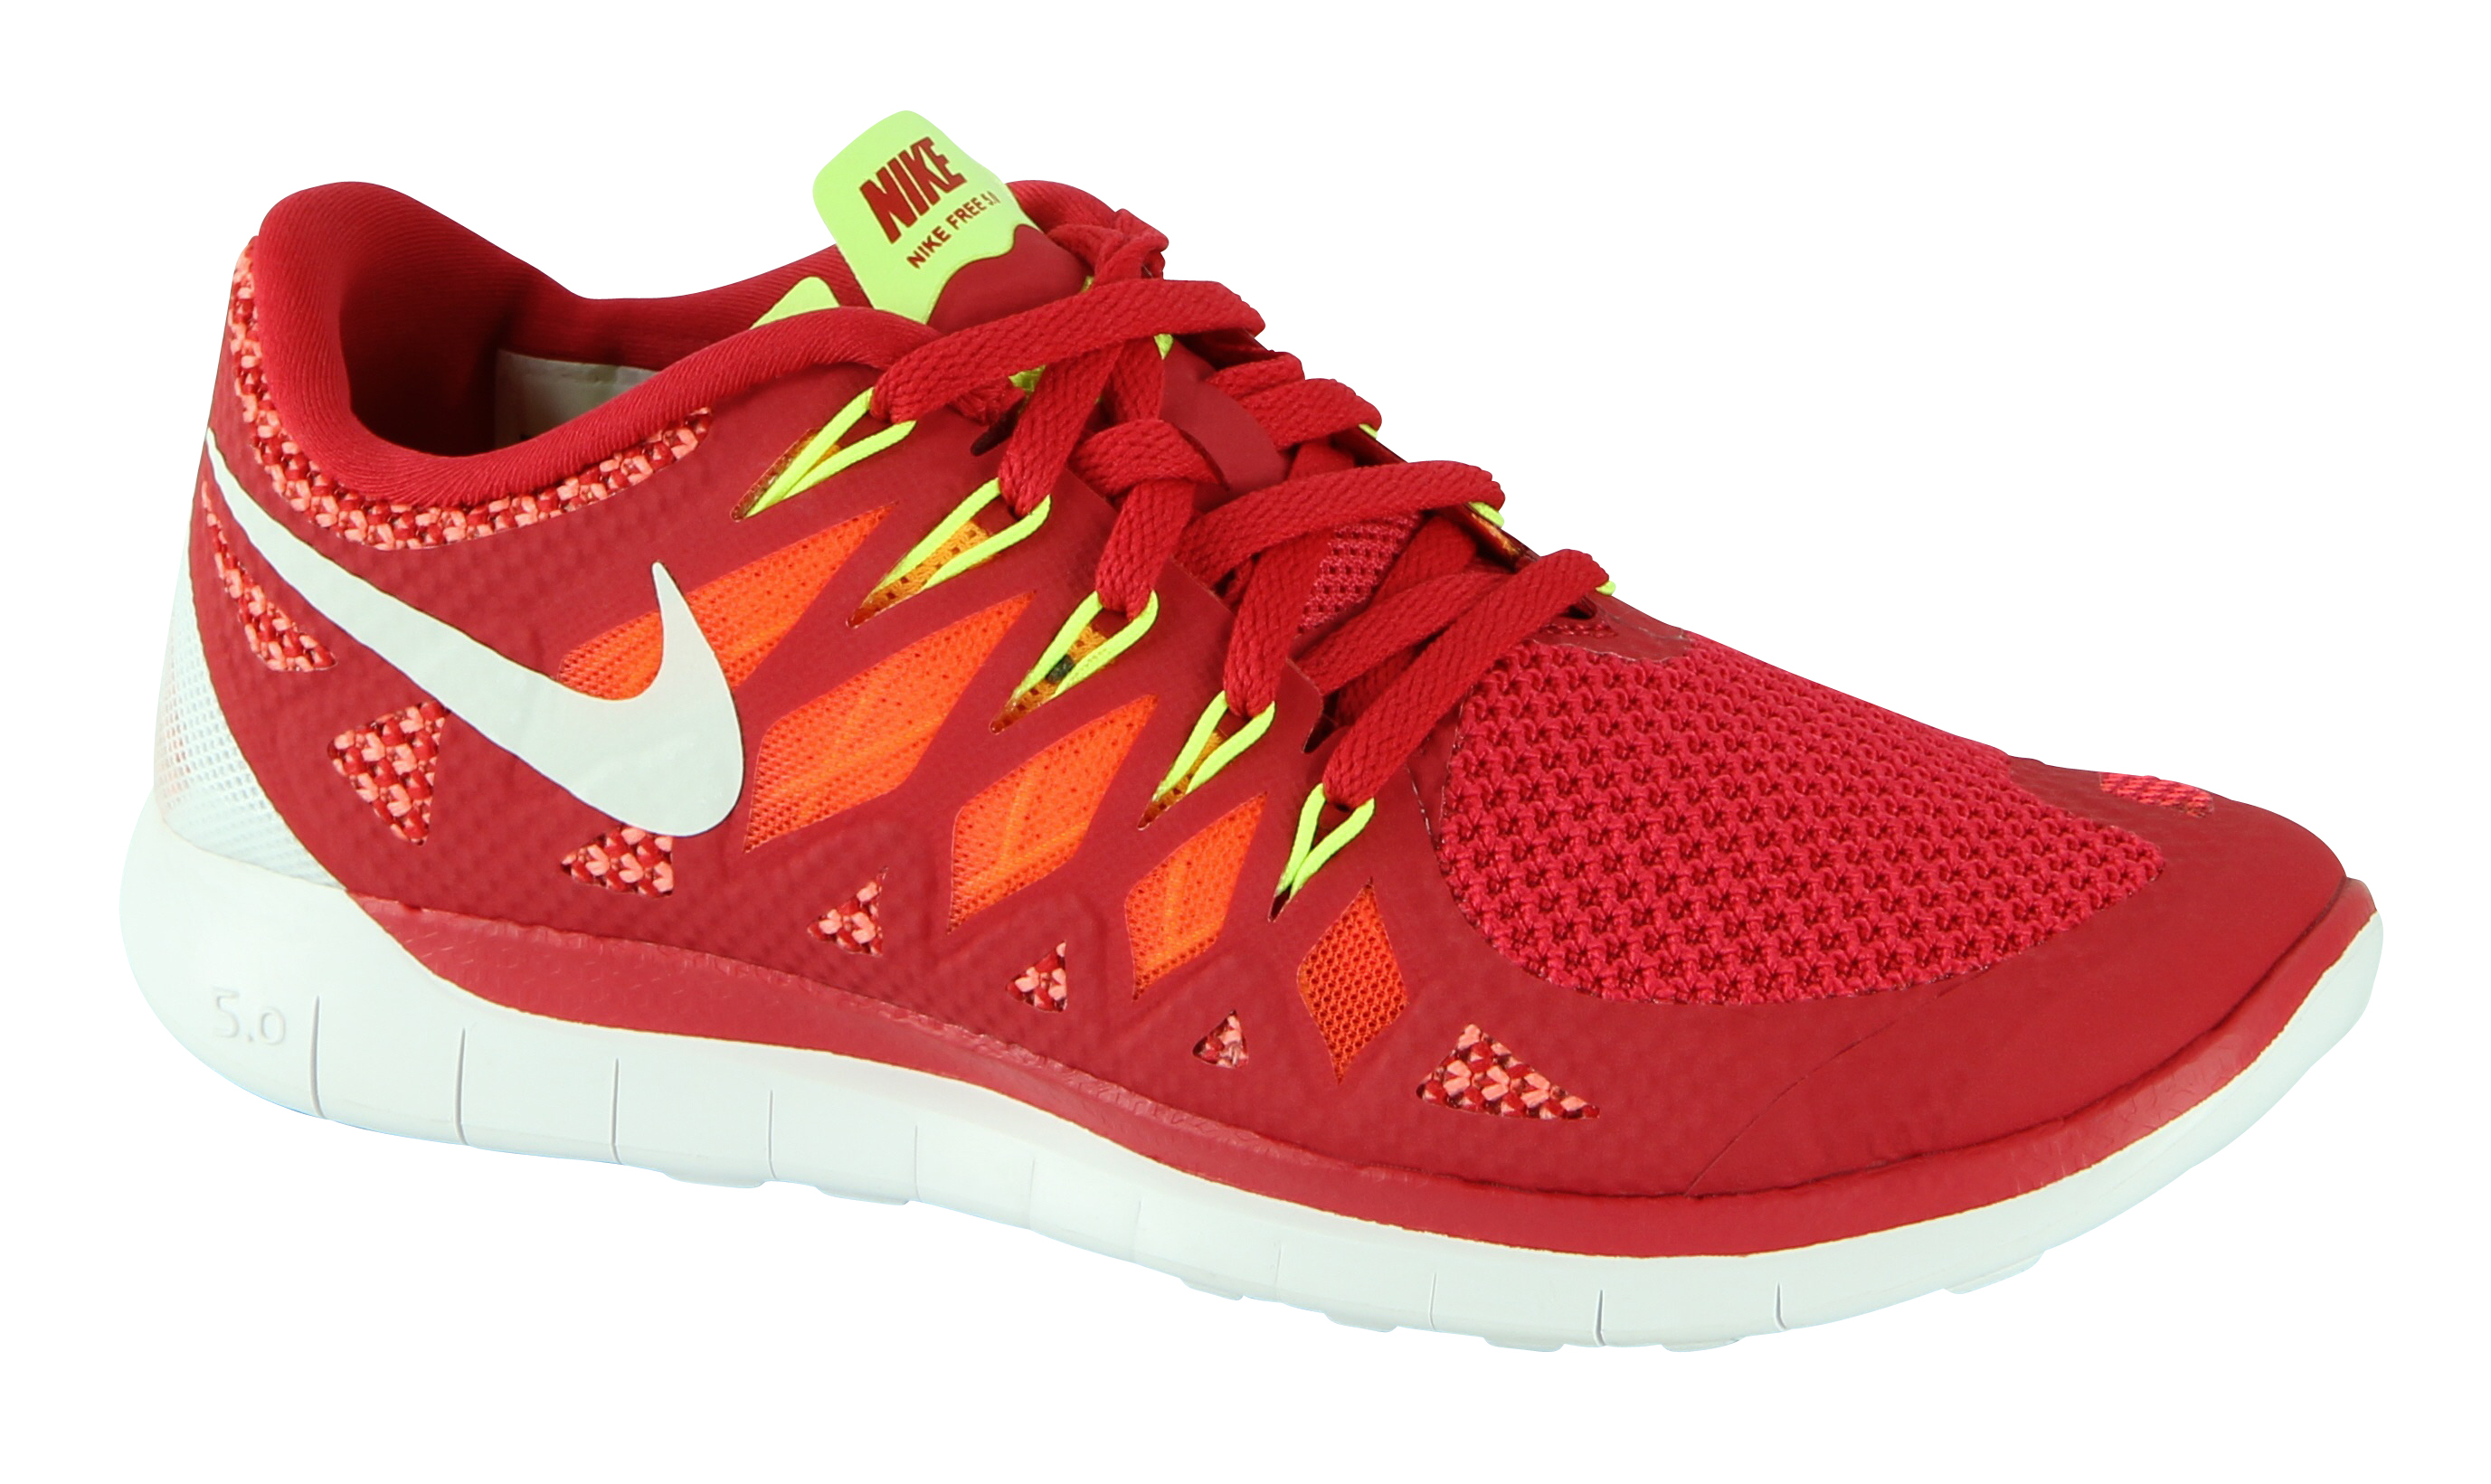 sale retailer 18383 95f9d ... czech nike free 5.0 intersport . c7554 cdbb9